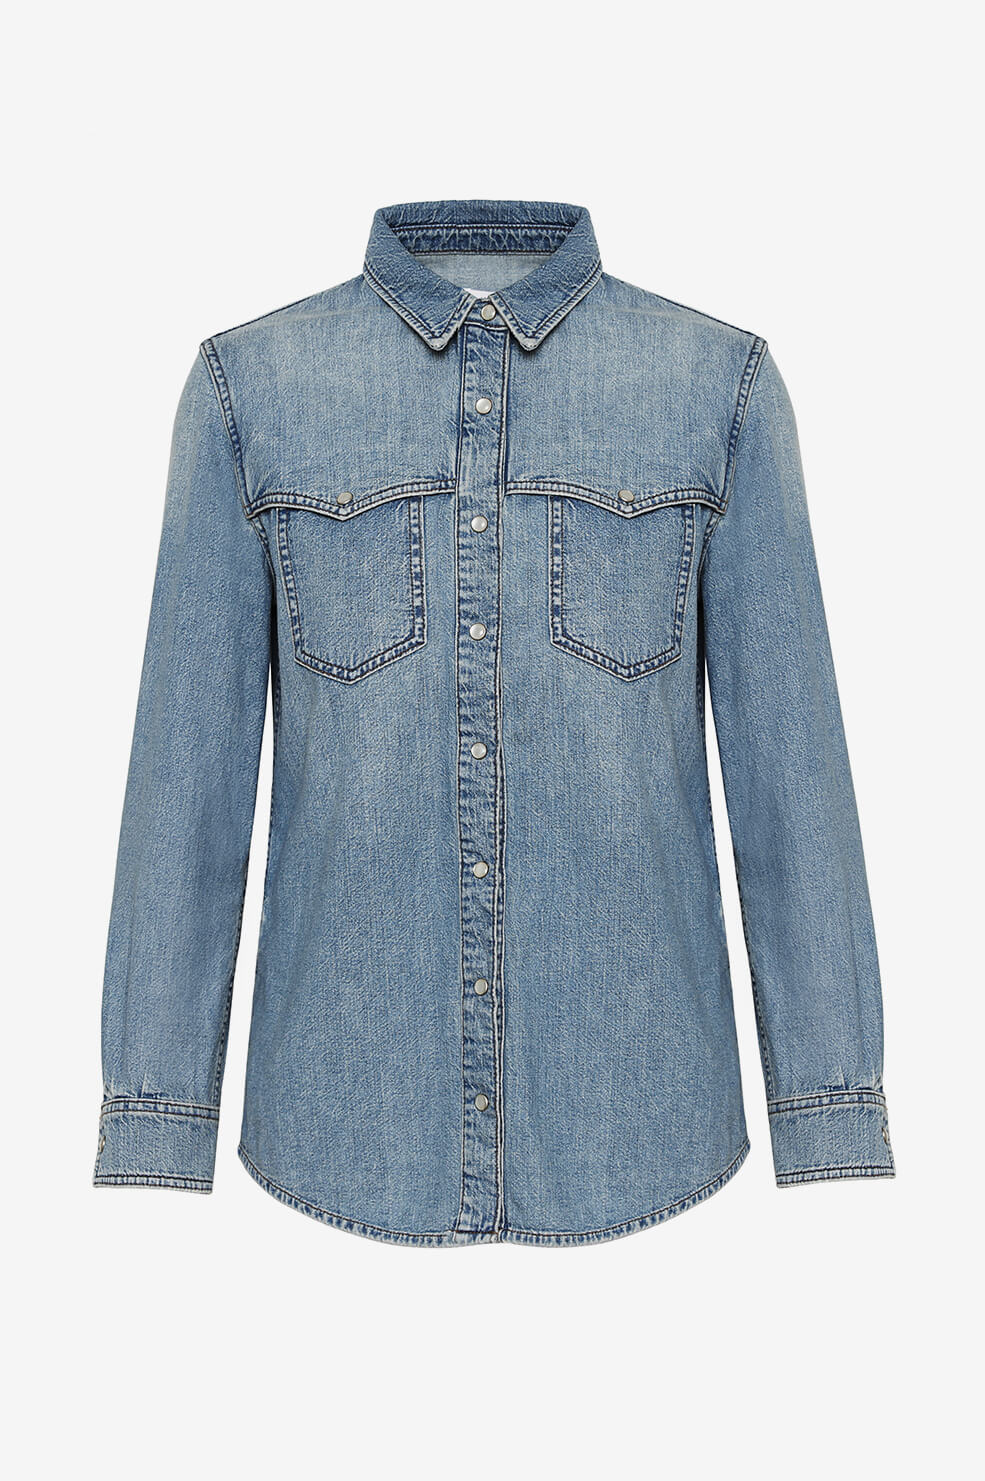 ANINE BING Luke Shirt - Breezy Blue